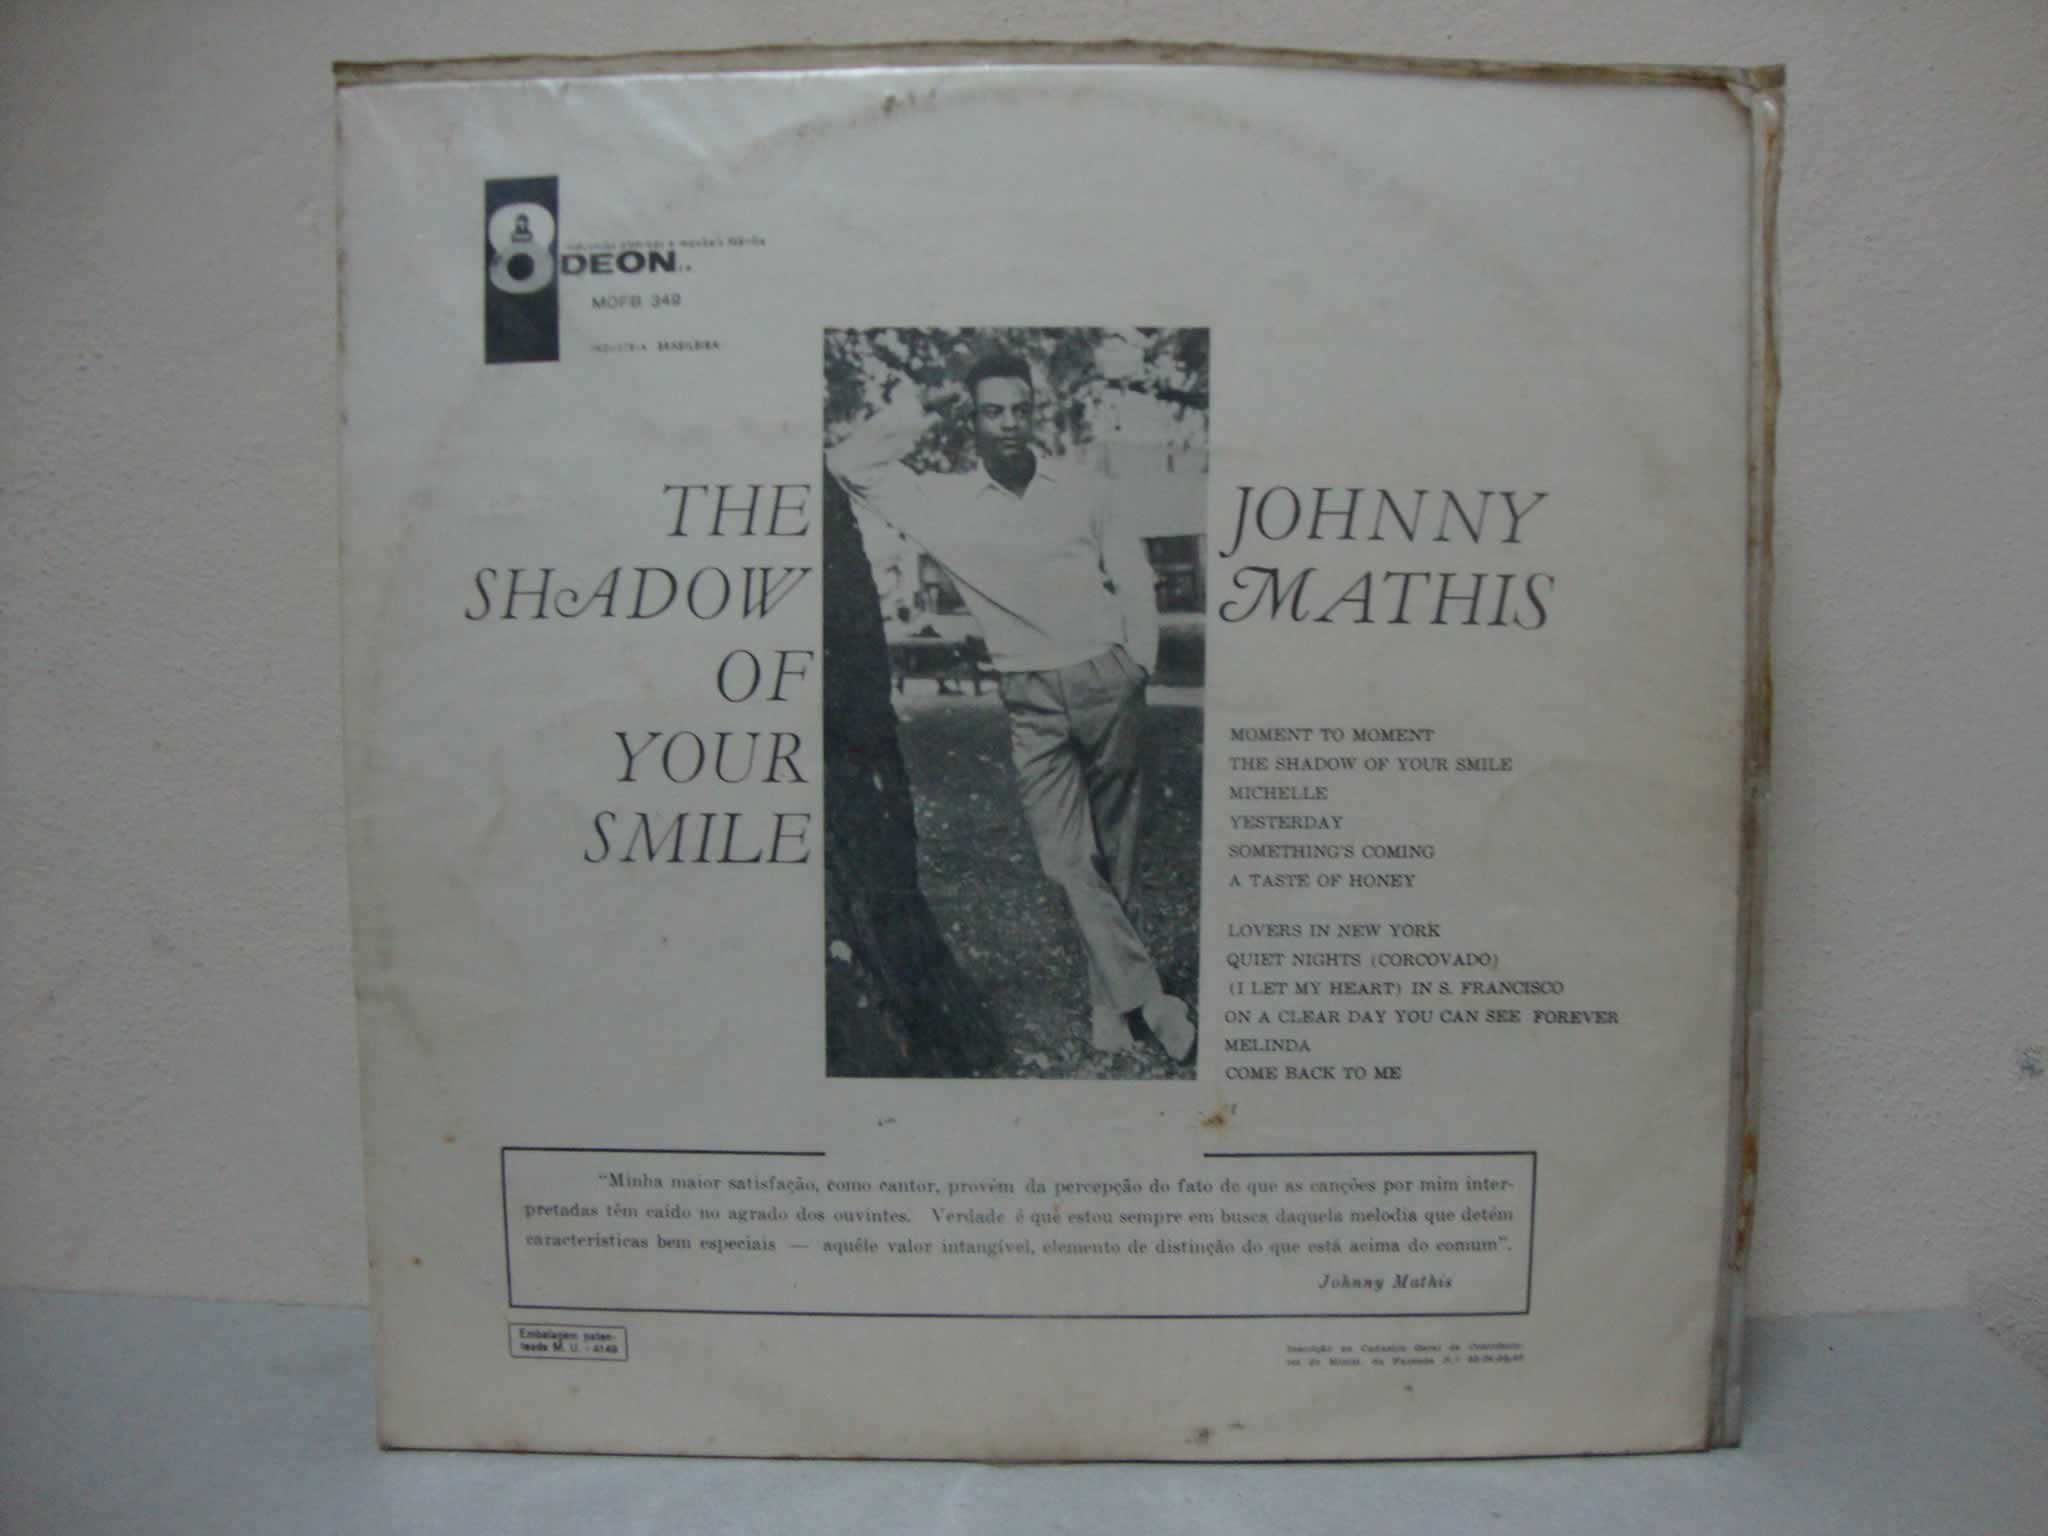 JOHNNY MATHIS - THE SHADOW OF YOUR SMILE